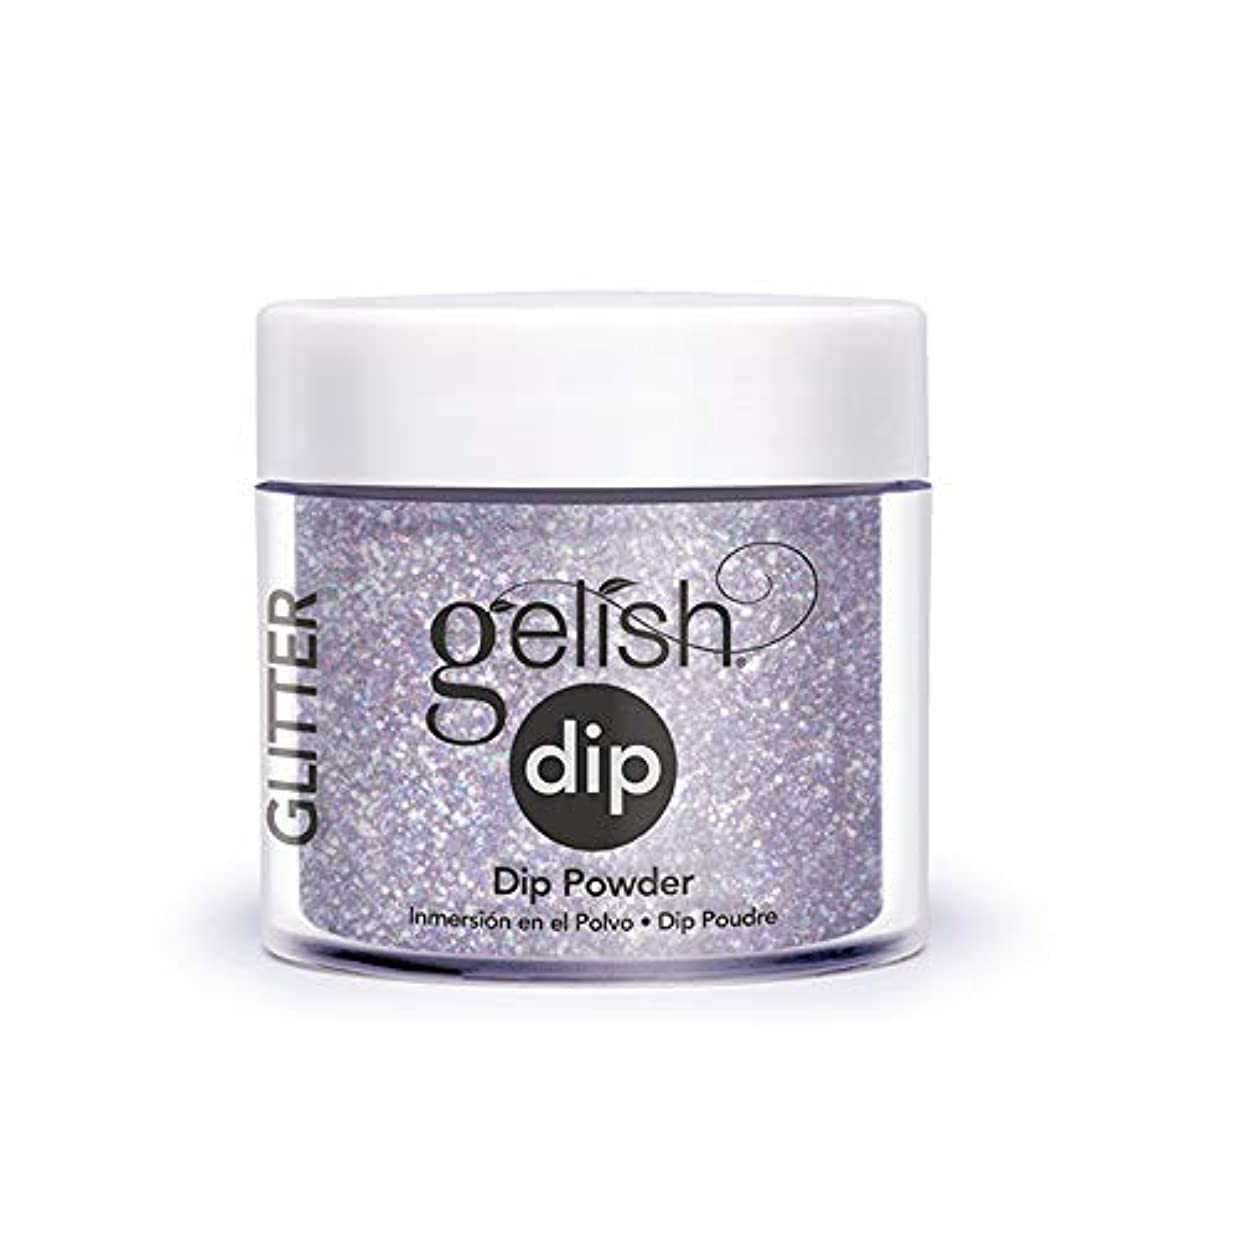 意外威信カリキュラムHarmony Gelish - Acrylic Dip Powder - Let Them Eat Cake - 23g / 0.8oz